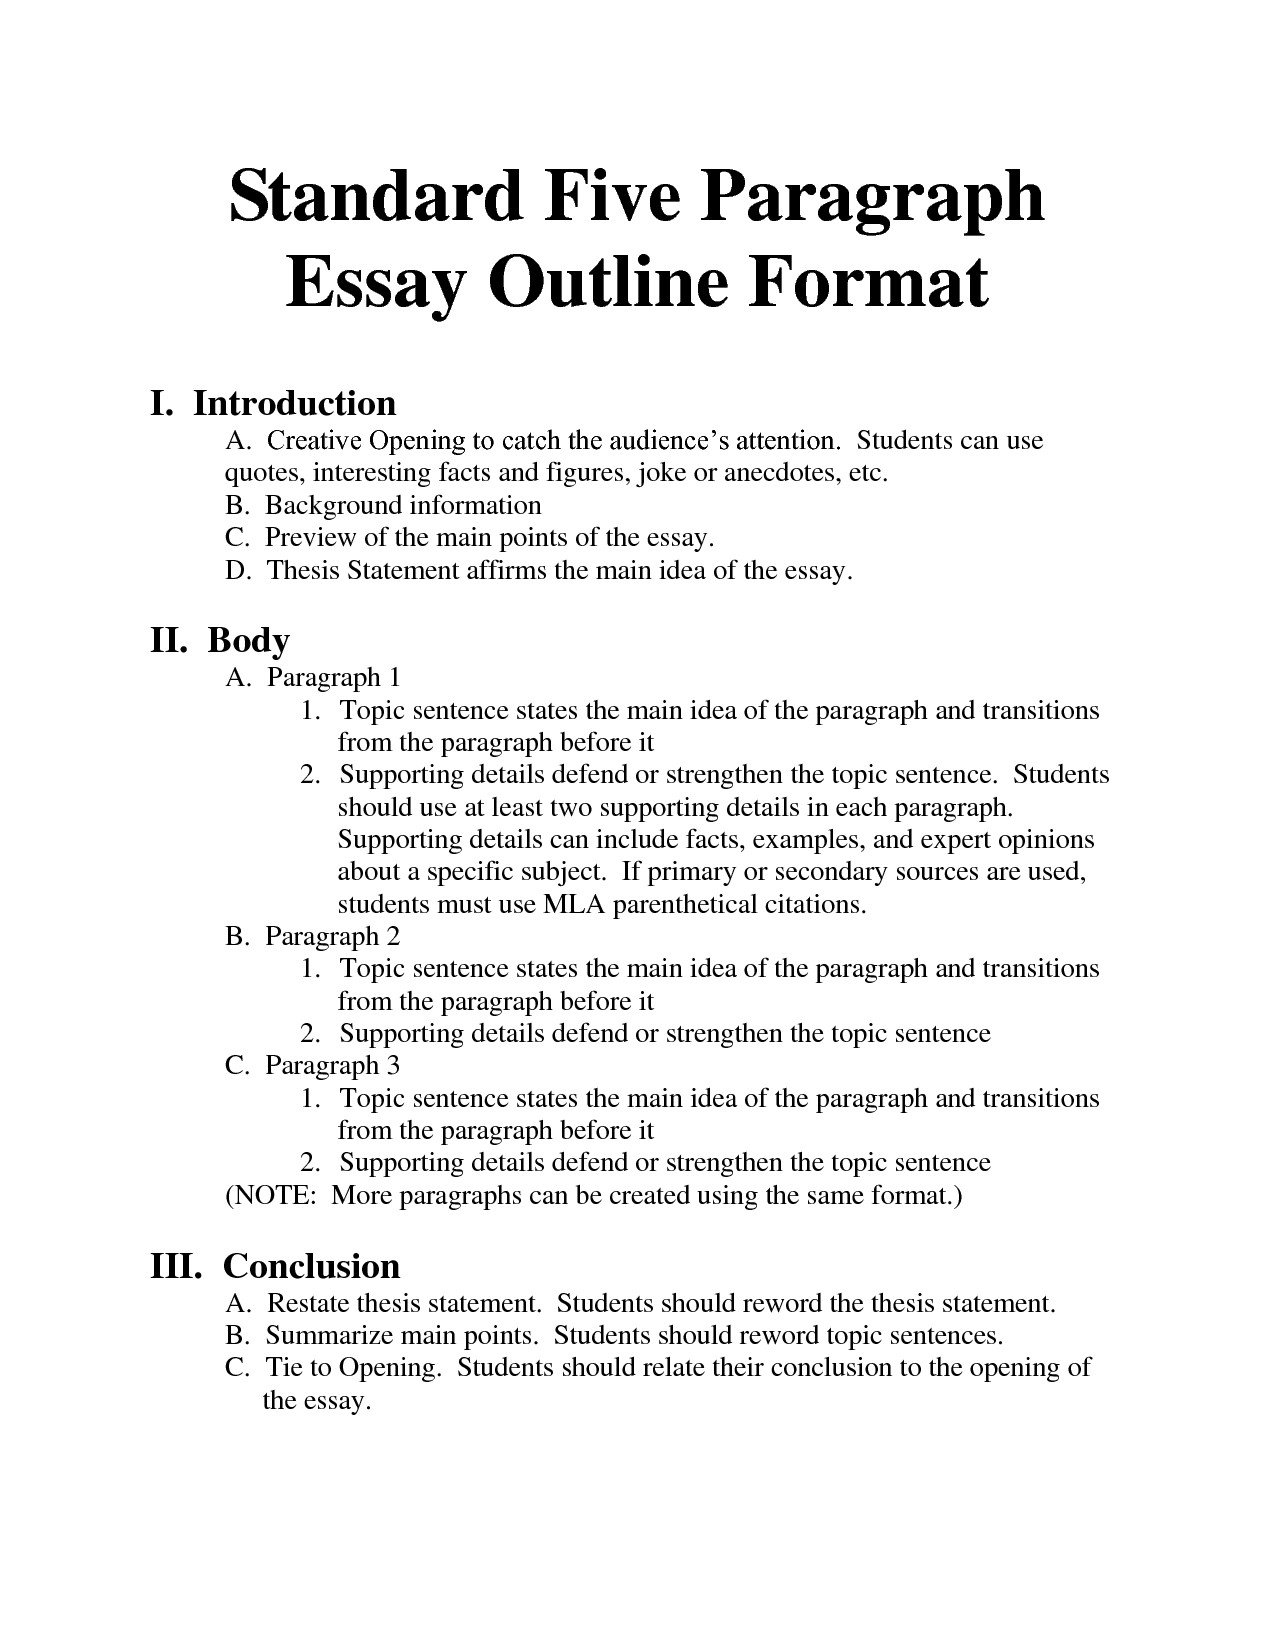 006 Proper Essay Format For Outline New Standard Bing Essays Correct Homescho Unique Pdf Paper College Argumentative Full